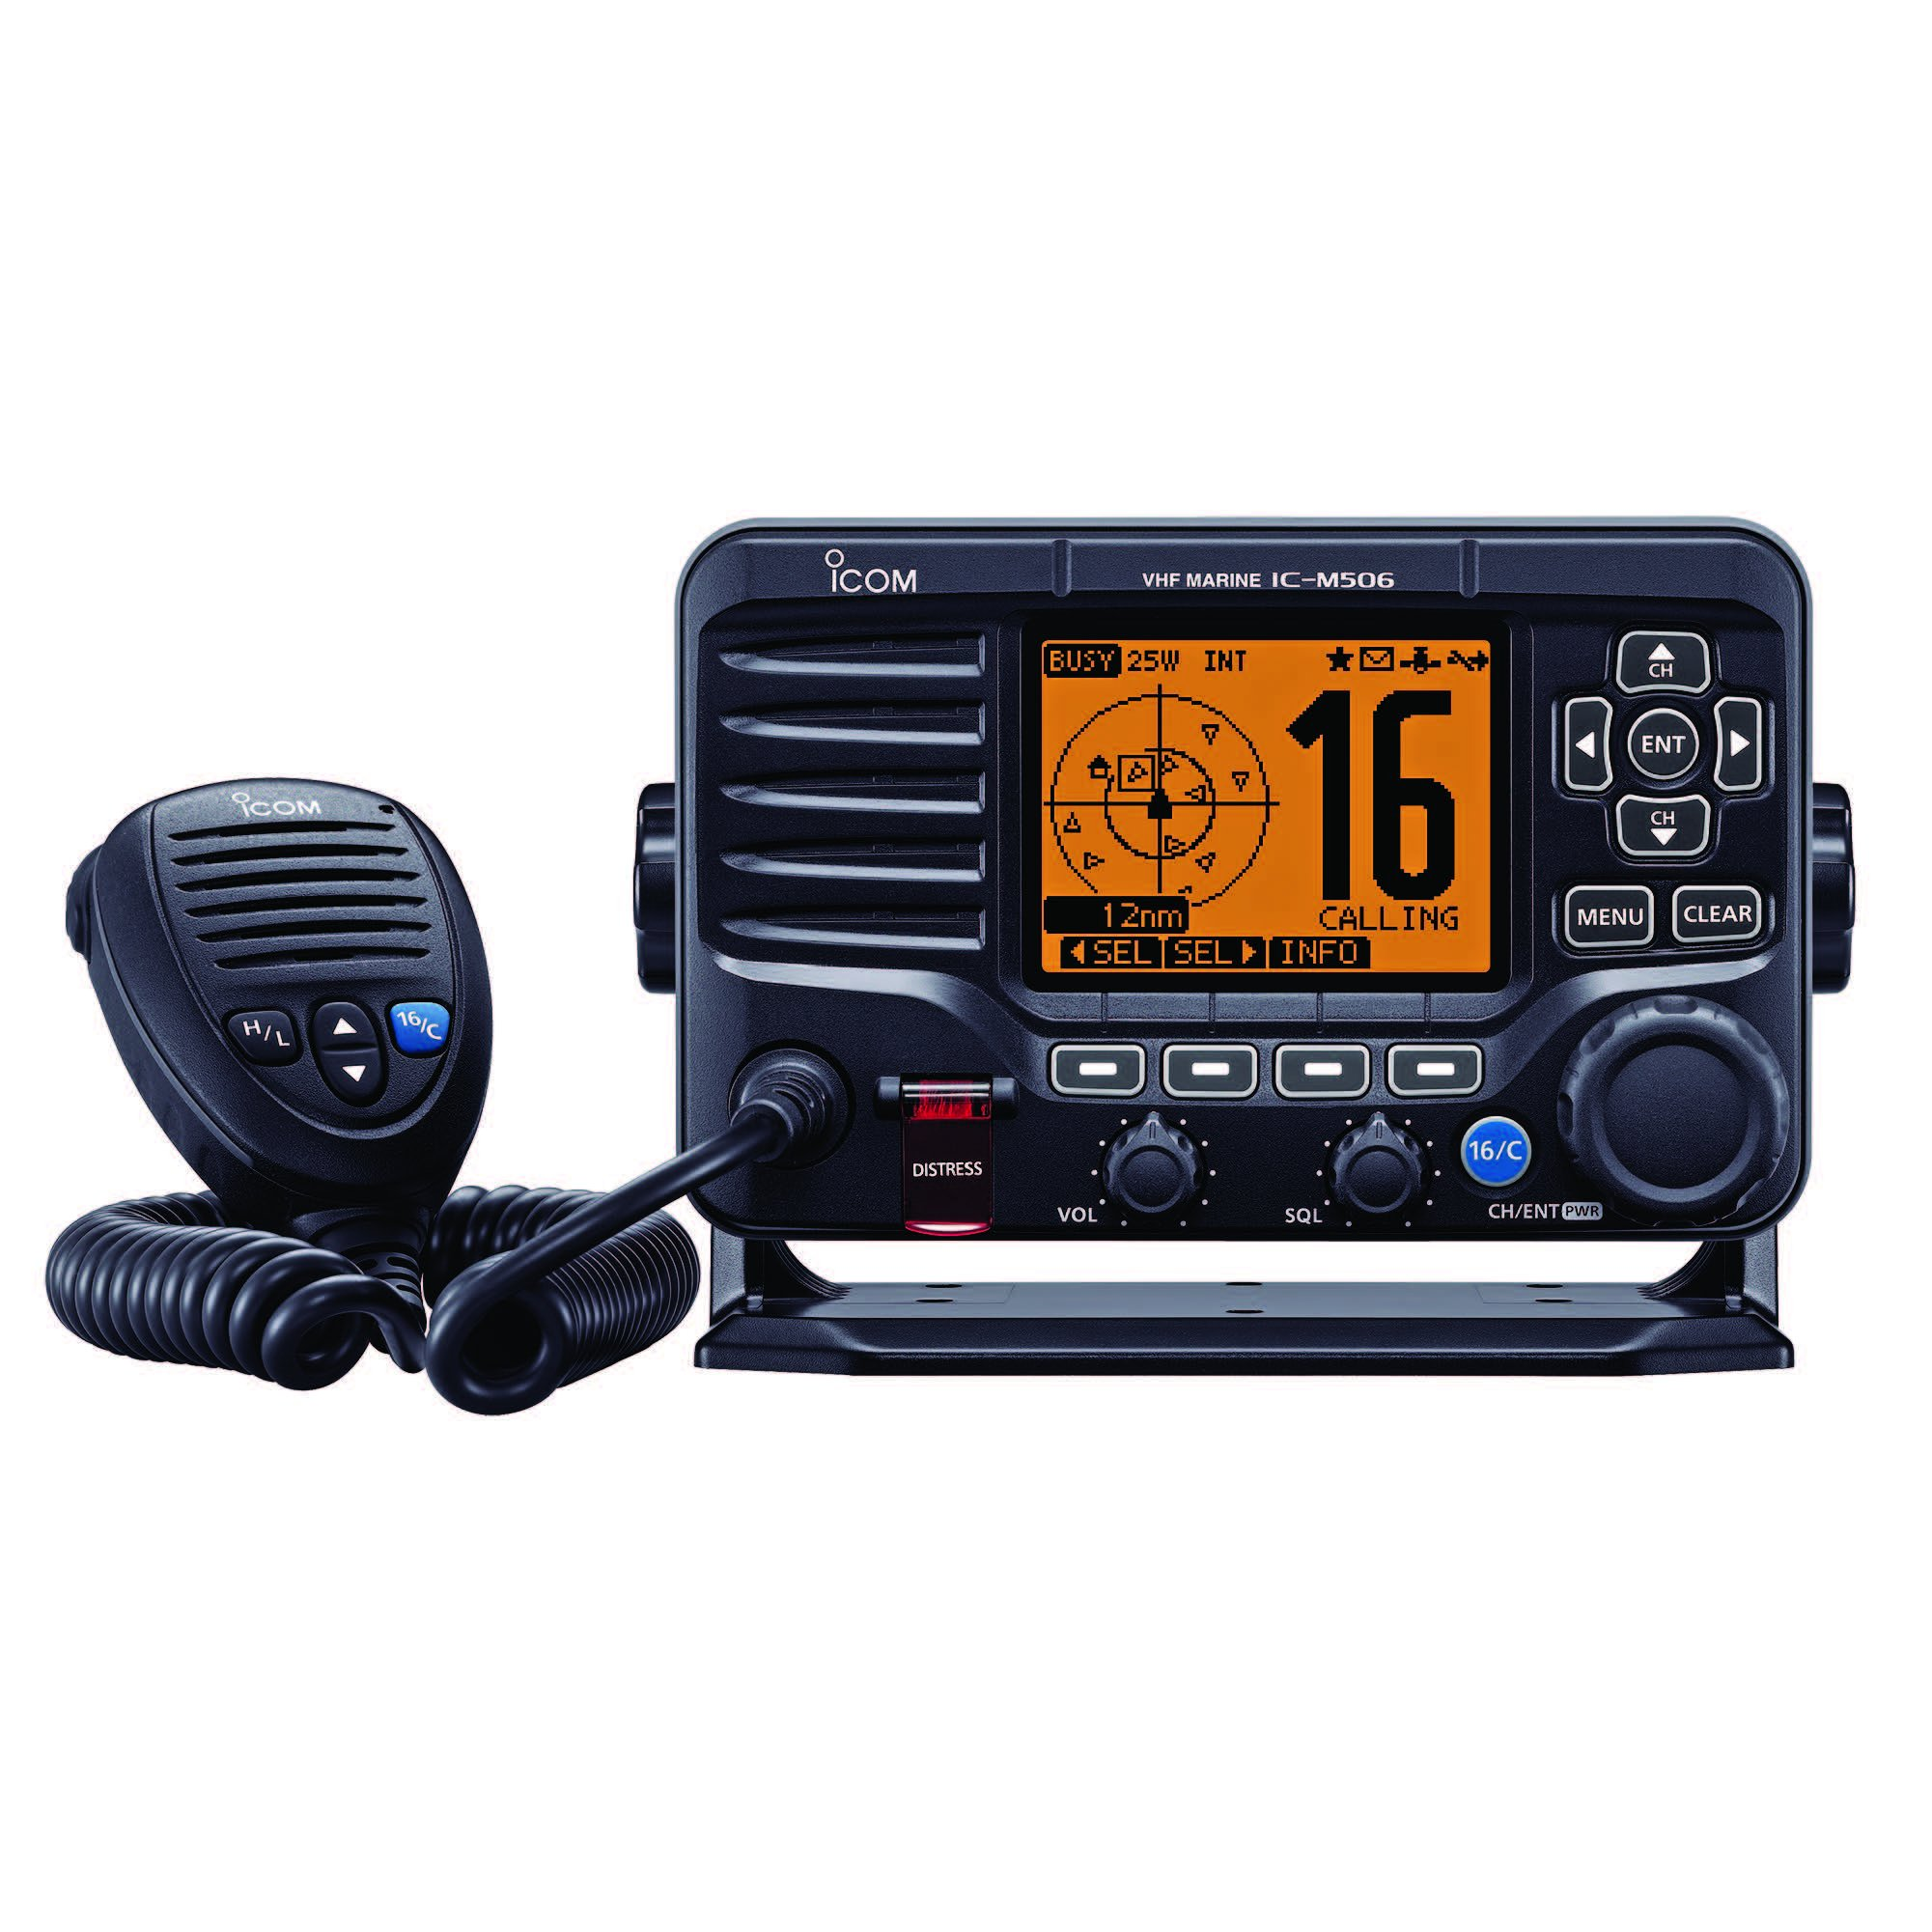 ICOM IC-M506 21 Fixed Mount VHF with Hailer, N2K, Front Mic and AIS by Icom